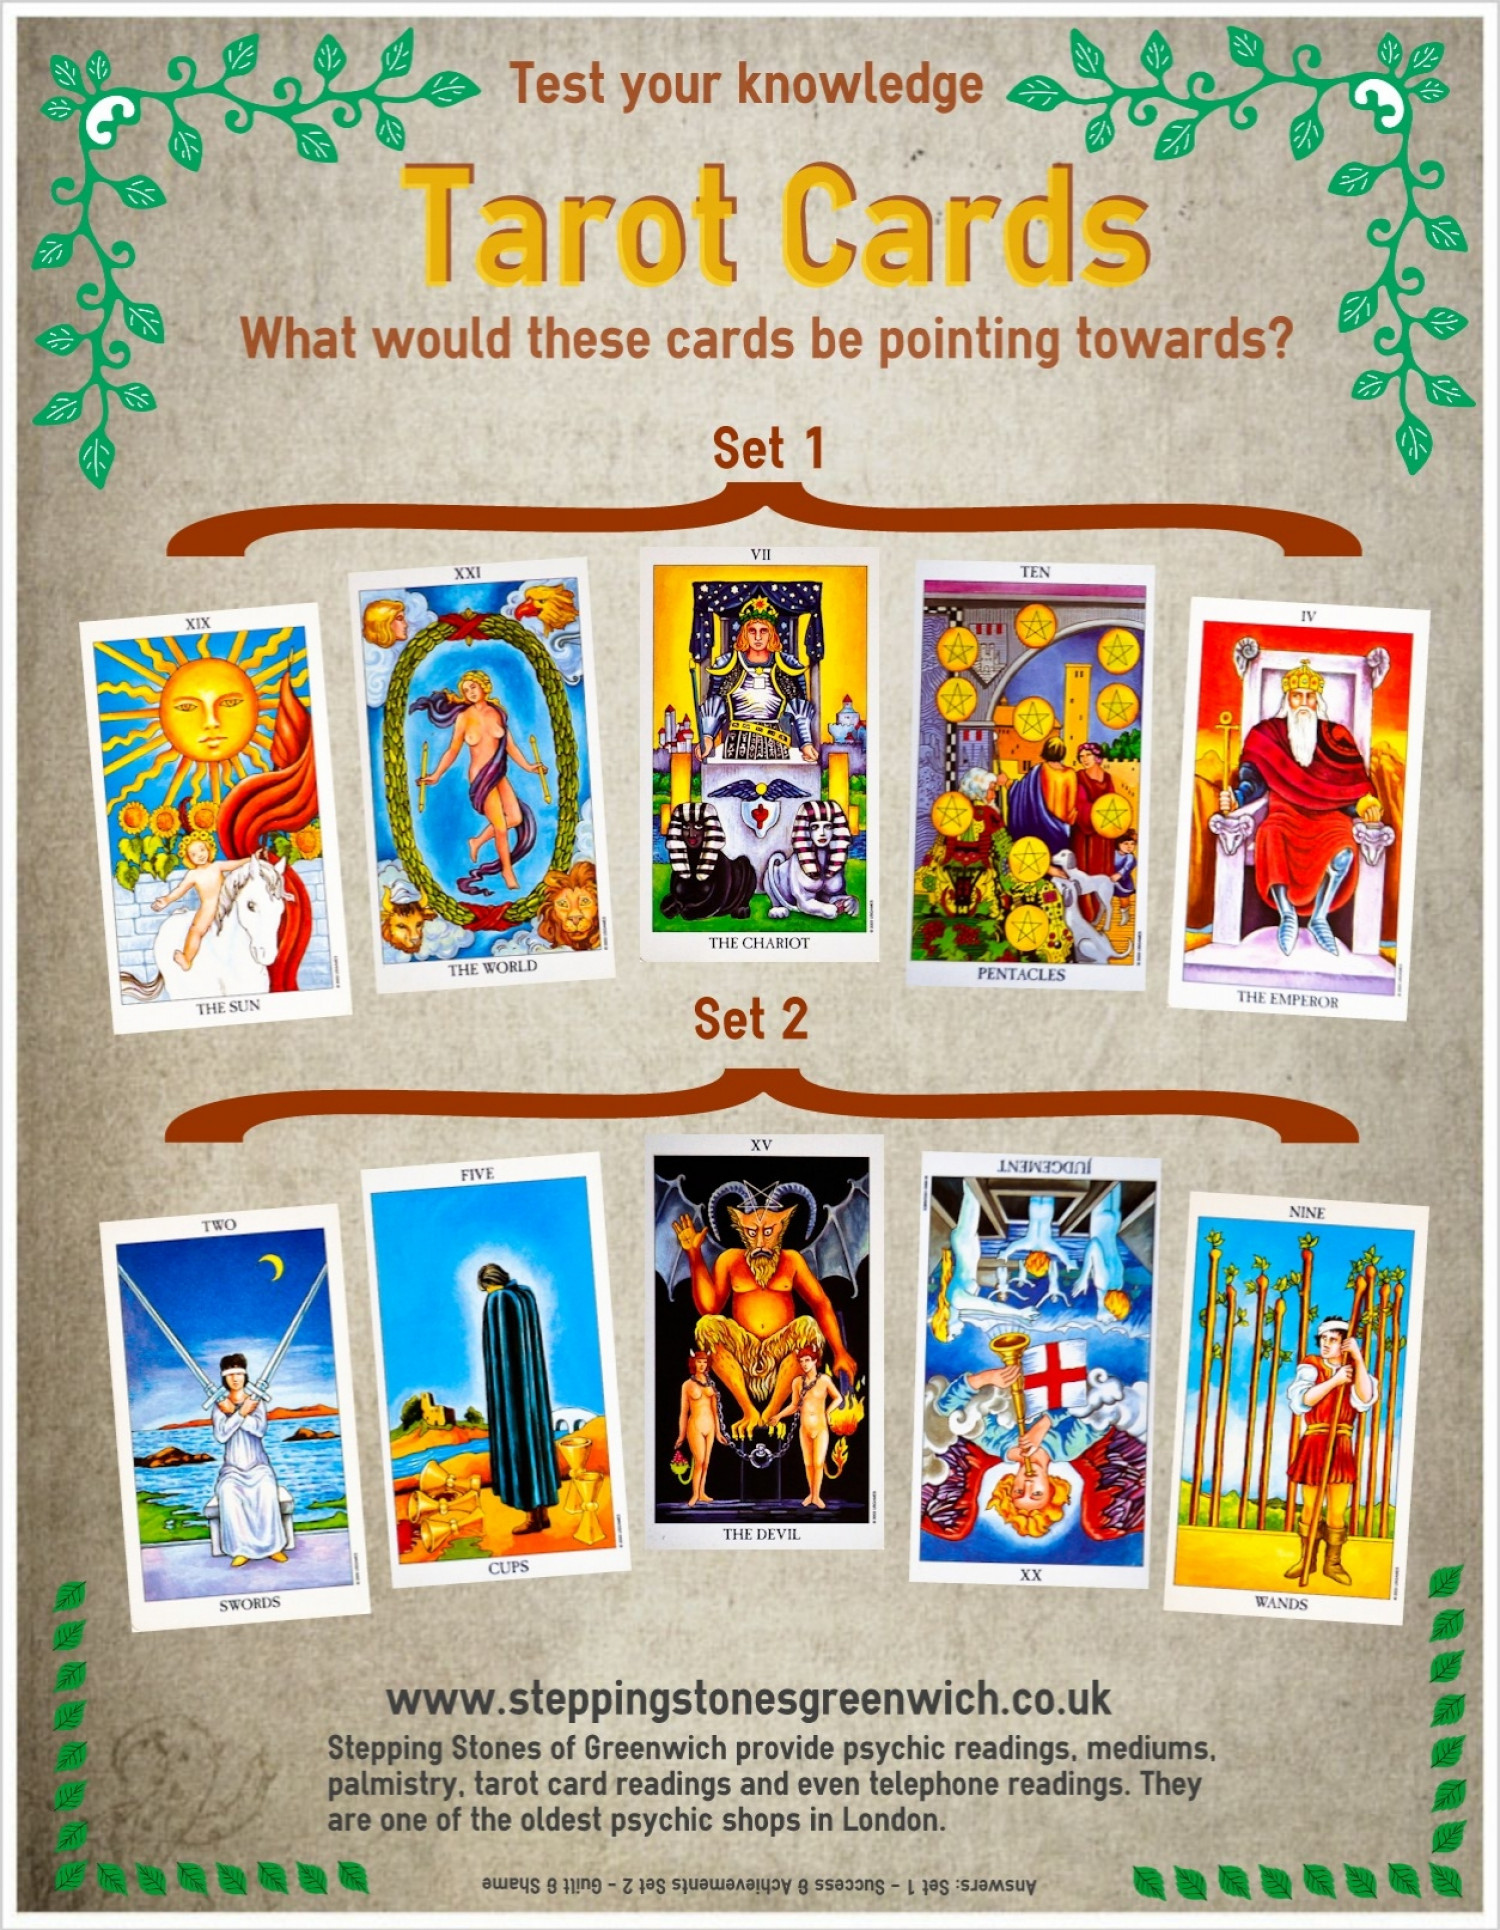 Tarot Cards - Test Your Knowledge Infographic